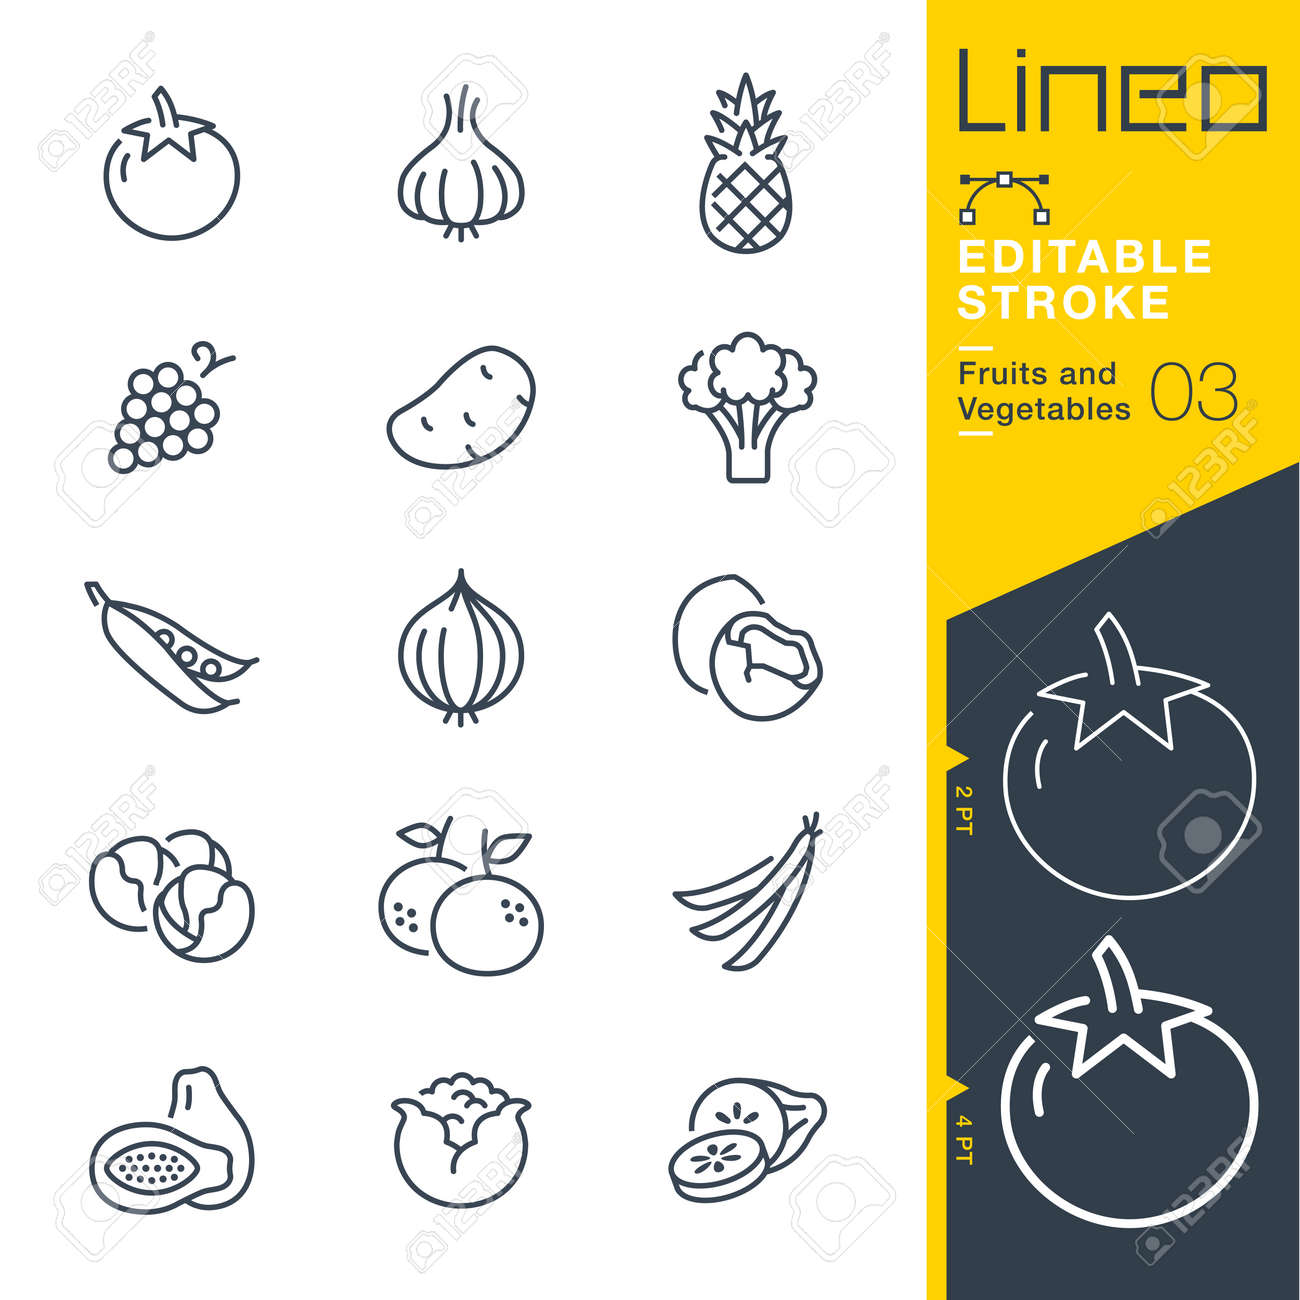 Lineo Editable Stroke - Fruits and Vegetables line Vector icons - Adjust stroke weight - Change to any color - 79734018